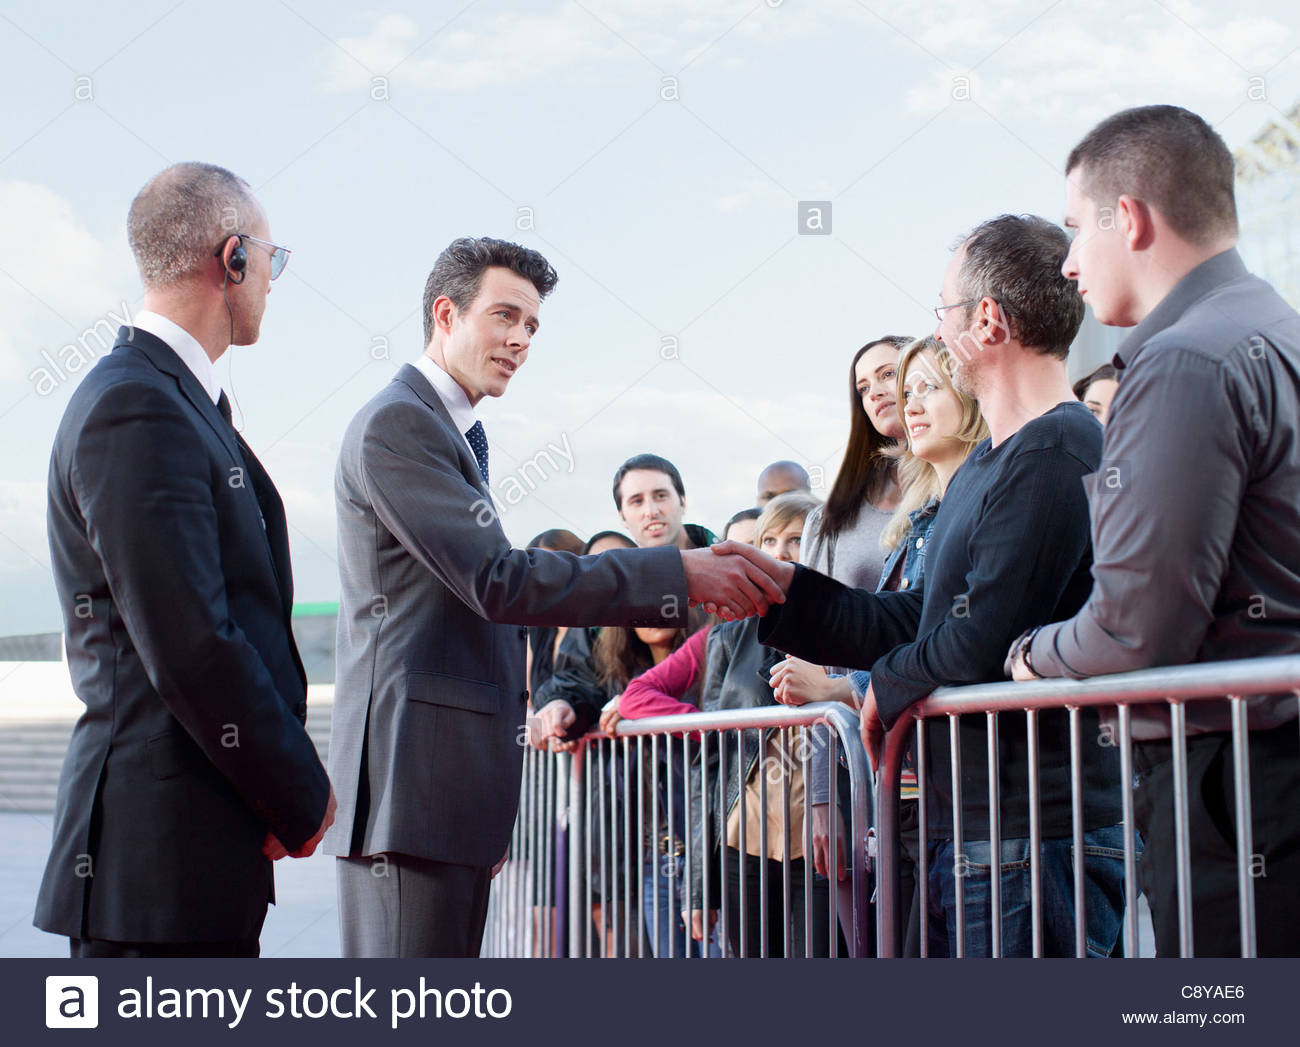 Politician shaking hands with people behind barrier - Stock Image